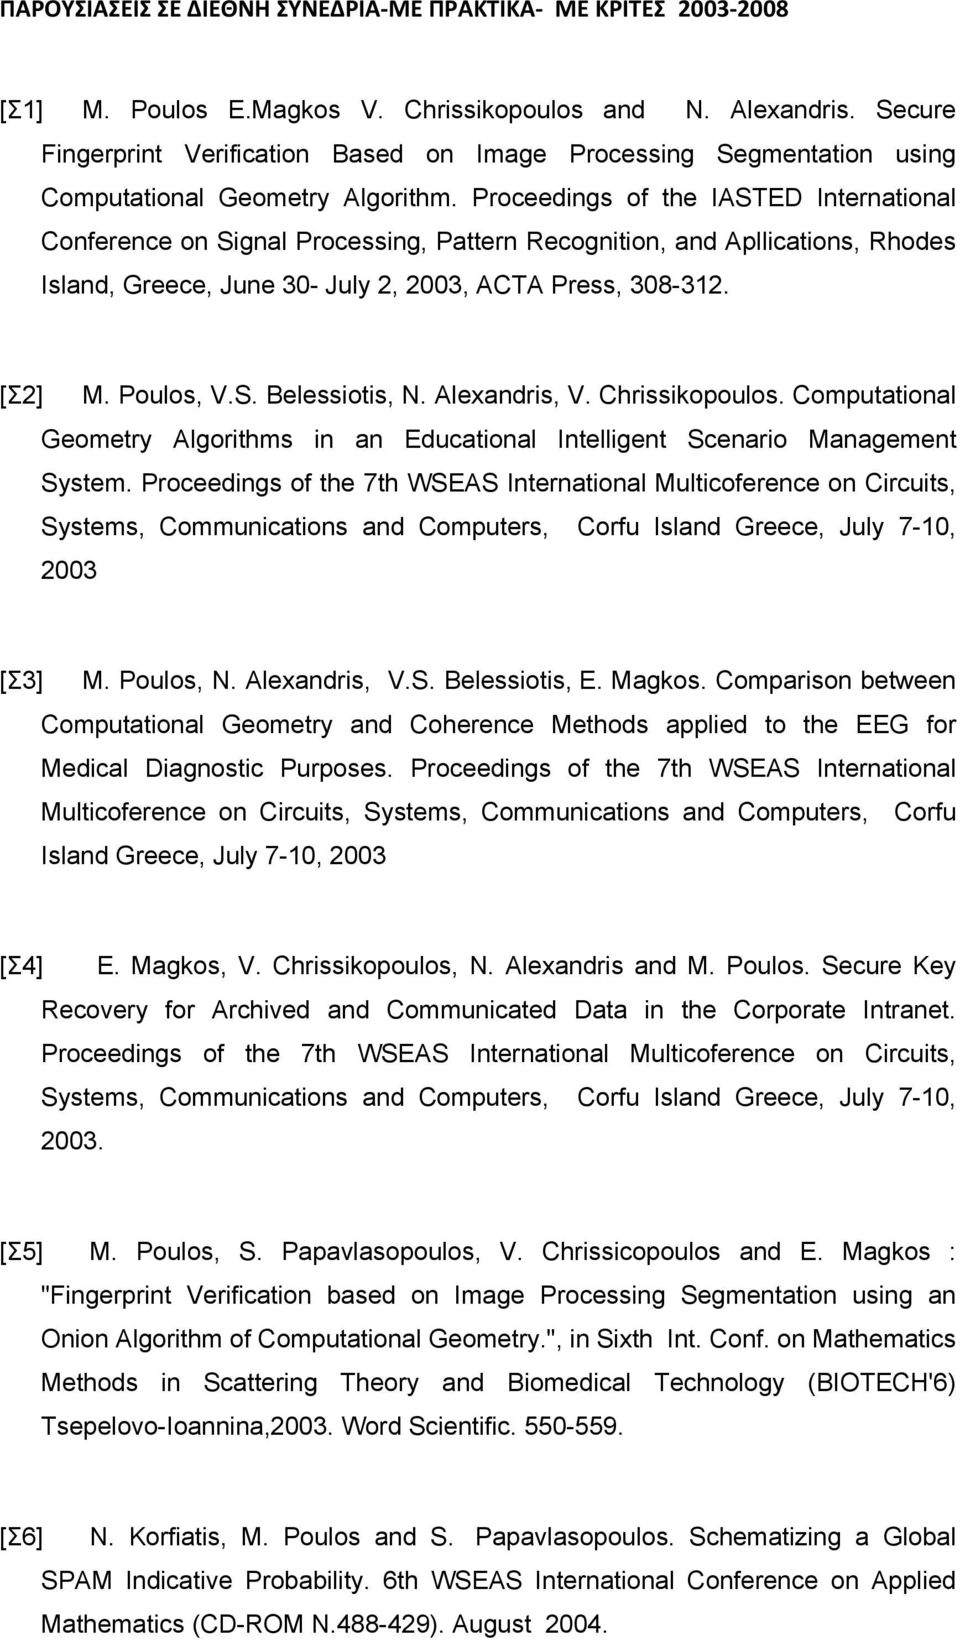 Proceedings of the IASTED International Conference on Signal Processing, Pattern Recognition, and Apllications, Rhodes Island, Greece, June 30- July 2, 2003, ACTA Press, 308-312. [Σ2] M. Poulos, V.S. Belessiotis, N.